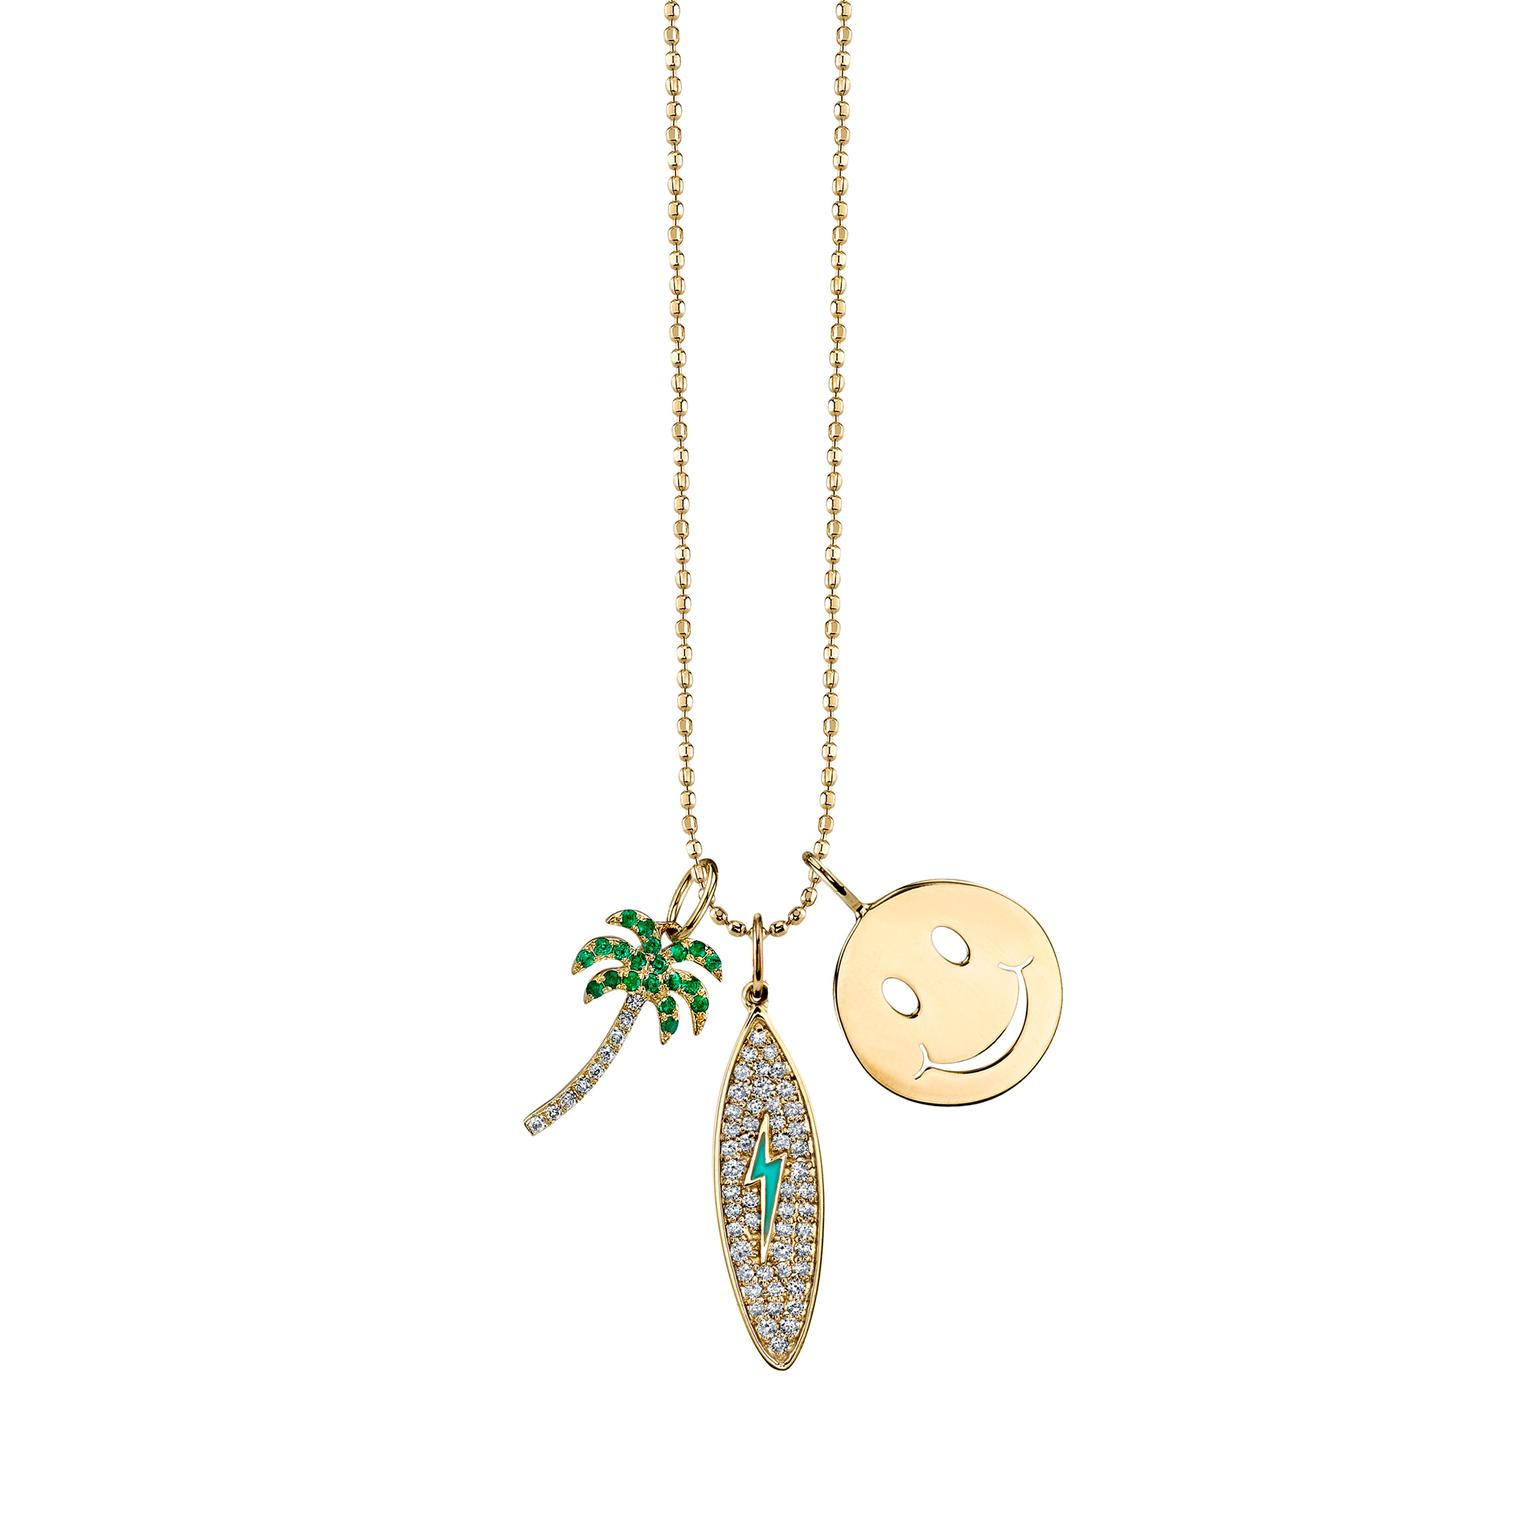 Sydney Evan California Dream charm necklace